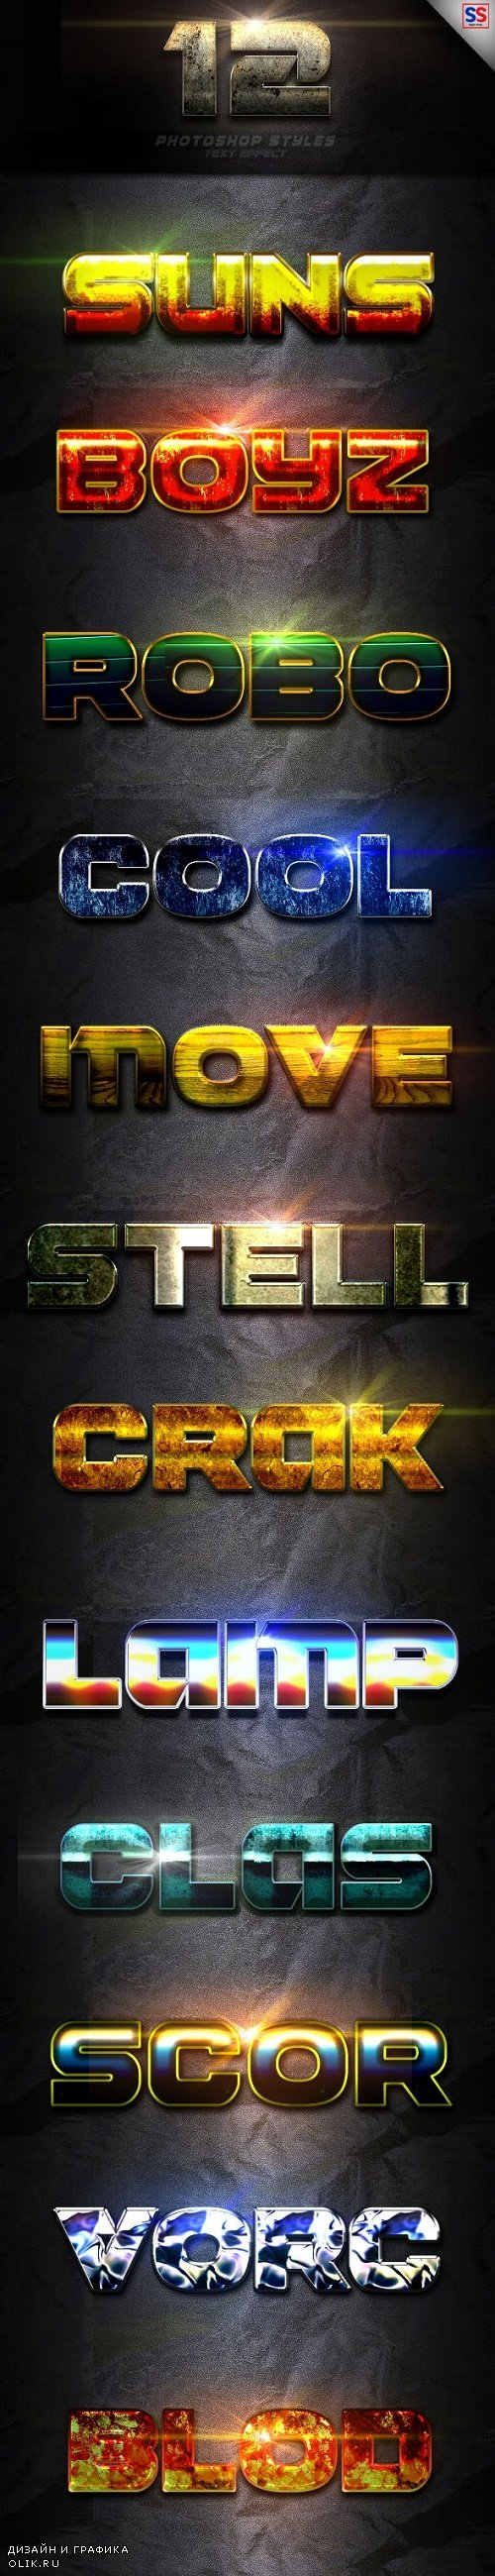 12 Photoshop text Effect Vol 5 - 23104860